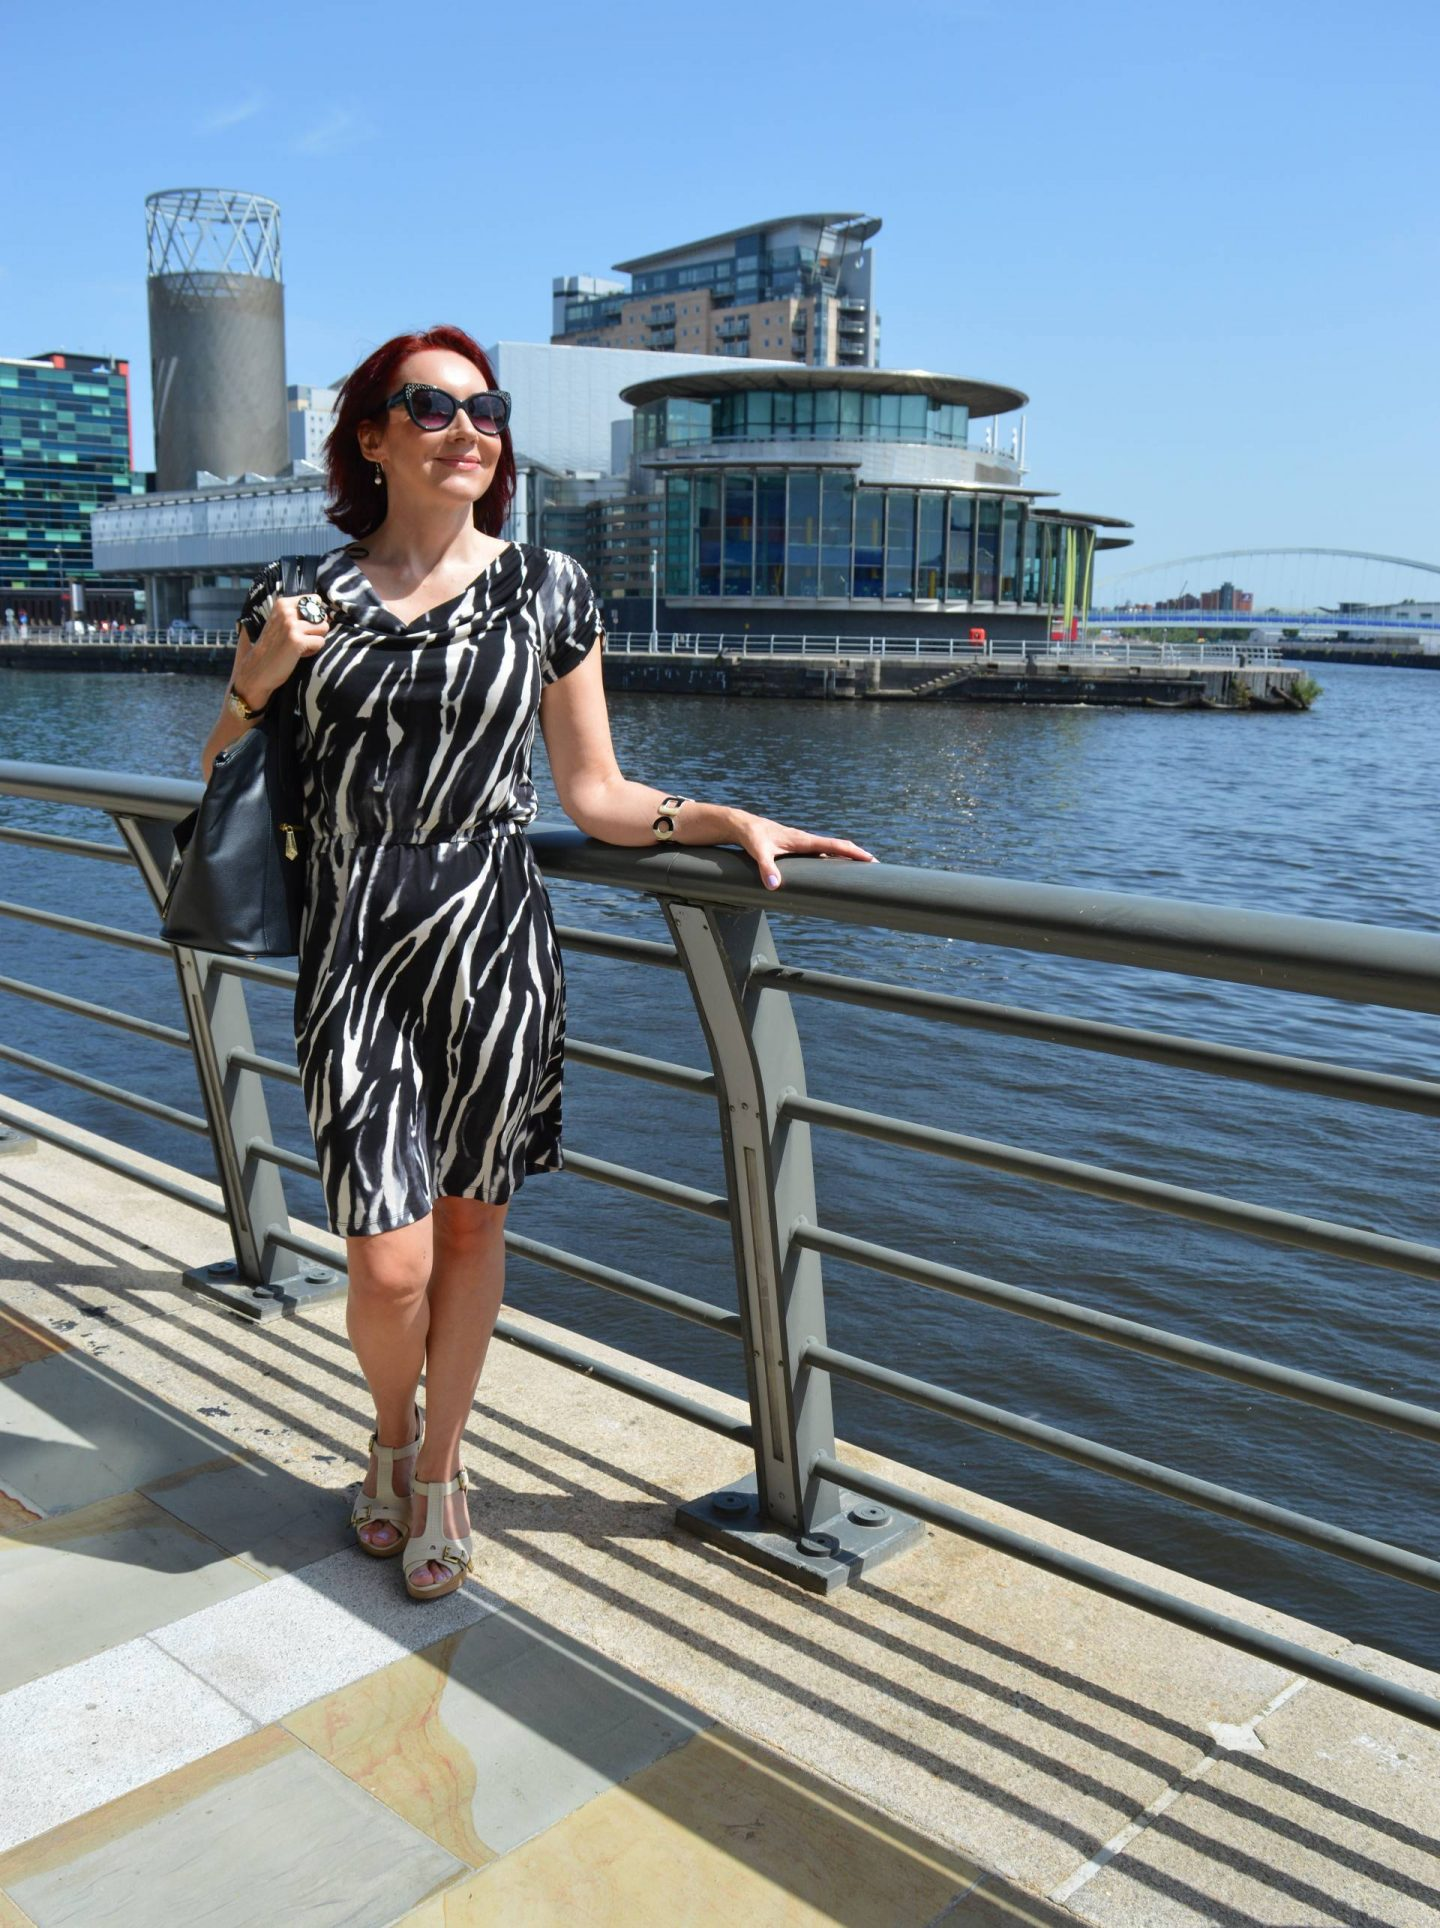 Zebra Print Dress With Black and White Accessories